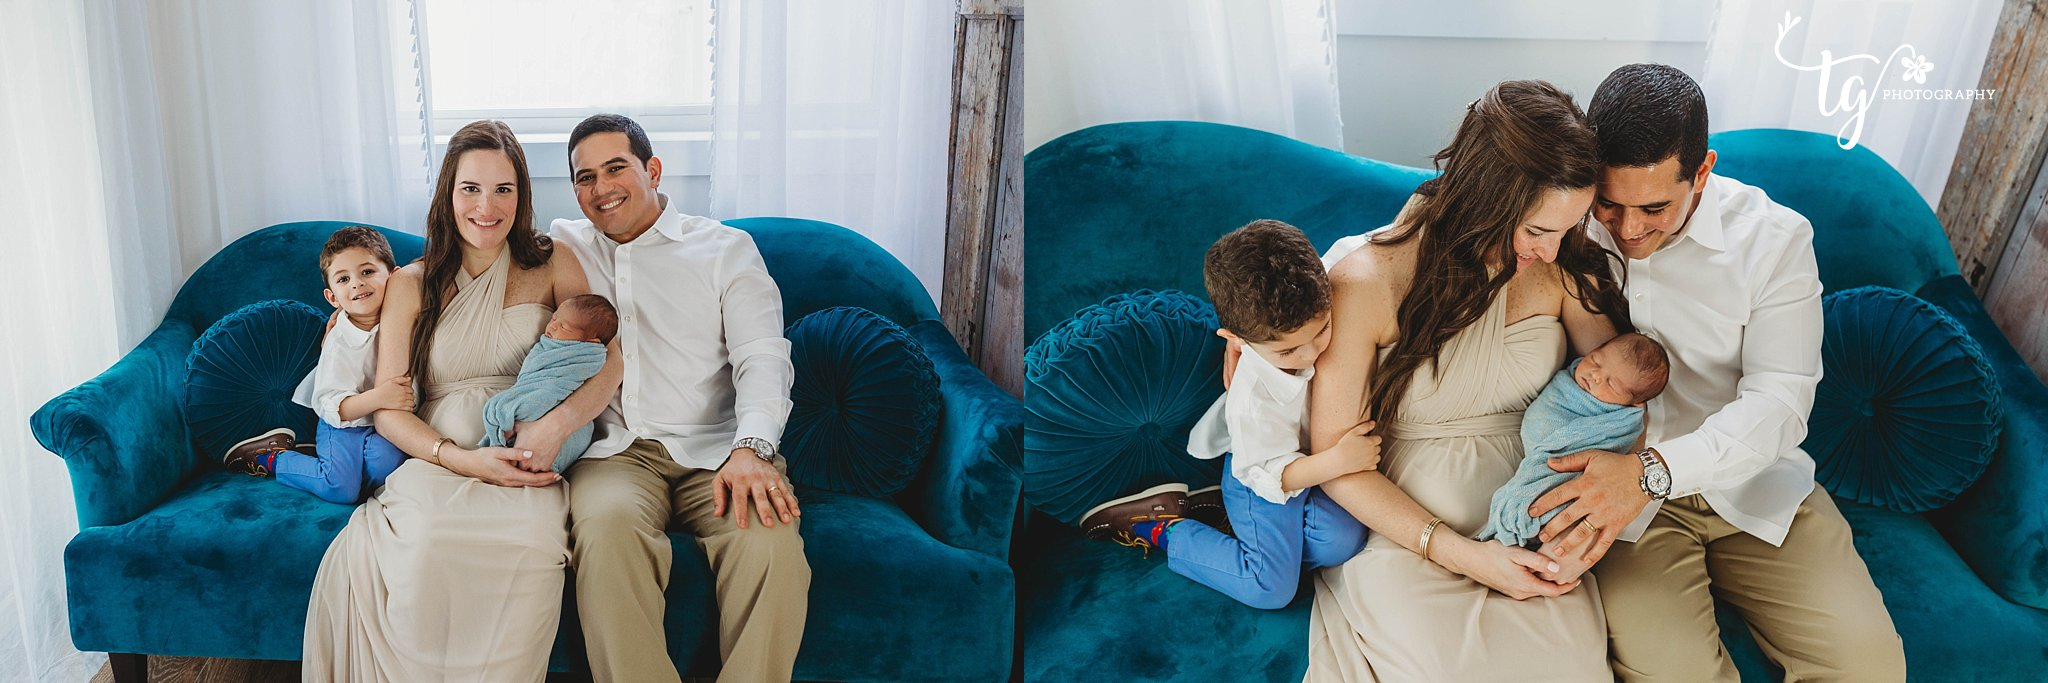 natural and classic family baby photographer